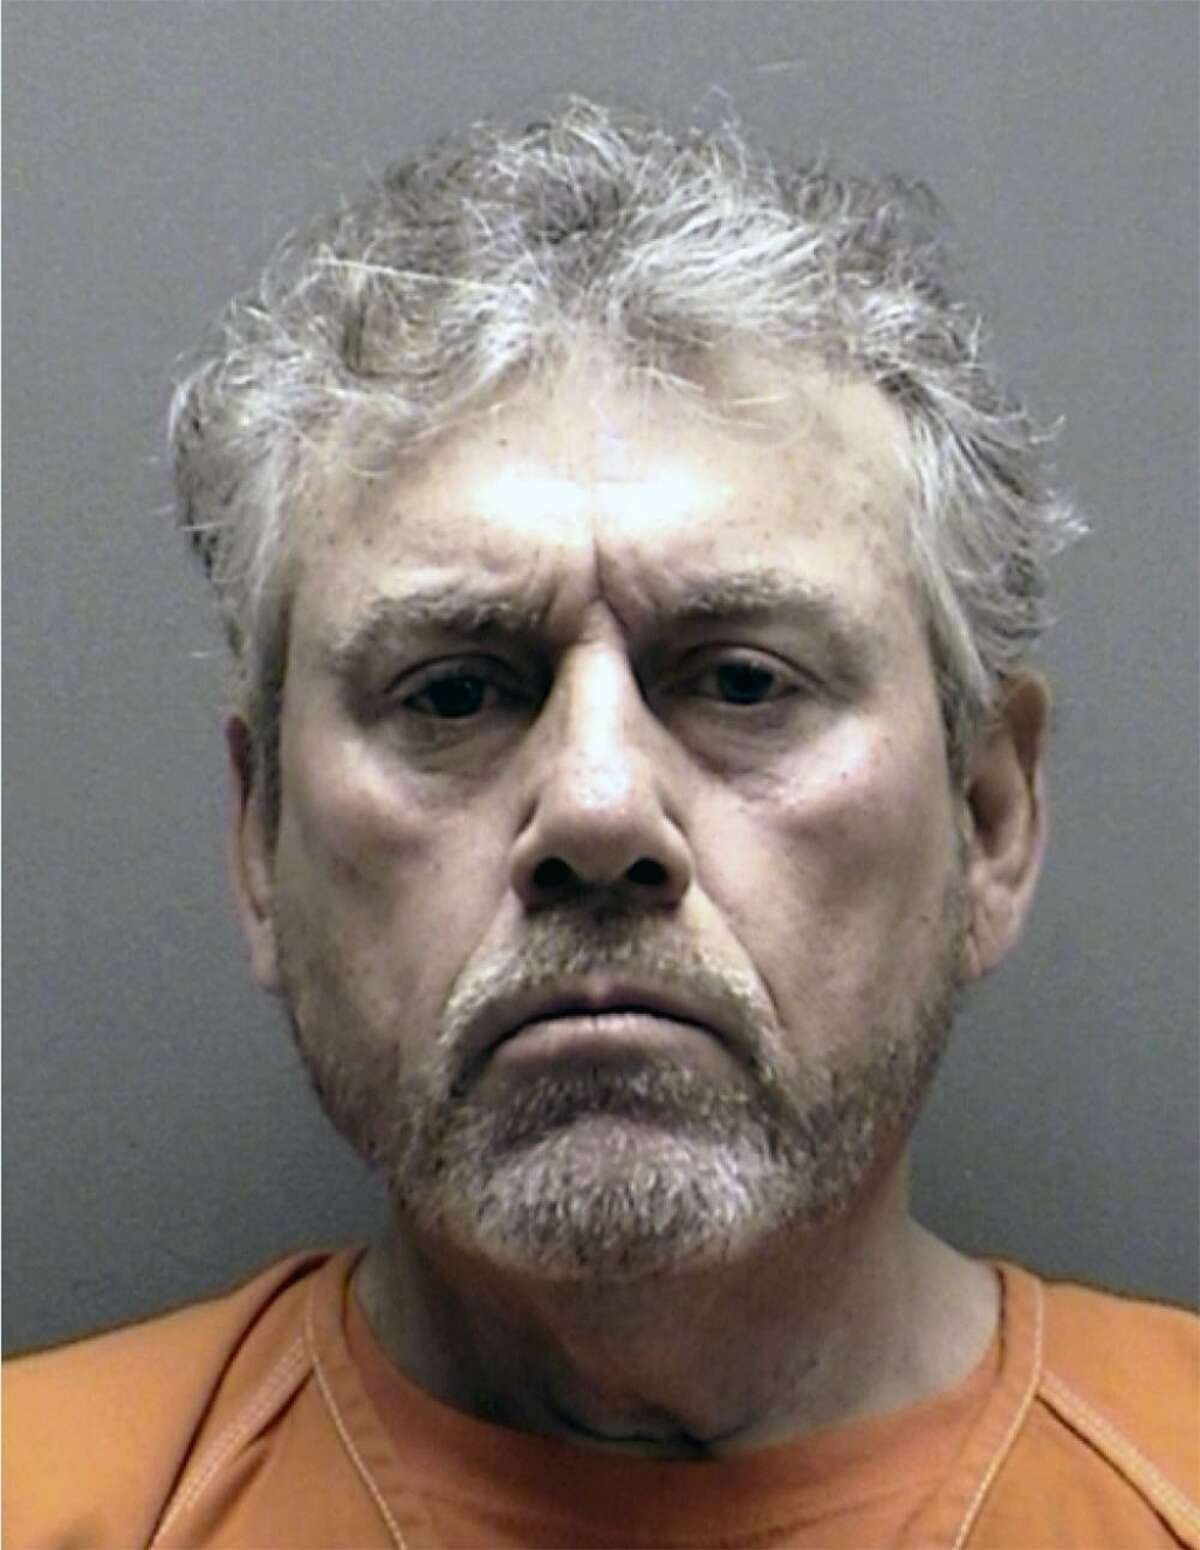 Two conspiracy theorists who claimed that the massacre that claimed 26 lives at the First Baptist Church of Sutherland Springs didn't actually happen were charged with trespassing. Robert Mikell Ussery, 54, also was charged in Wilson County with making a terroristic threat.